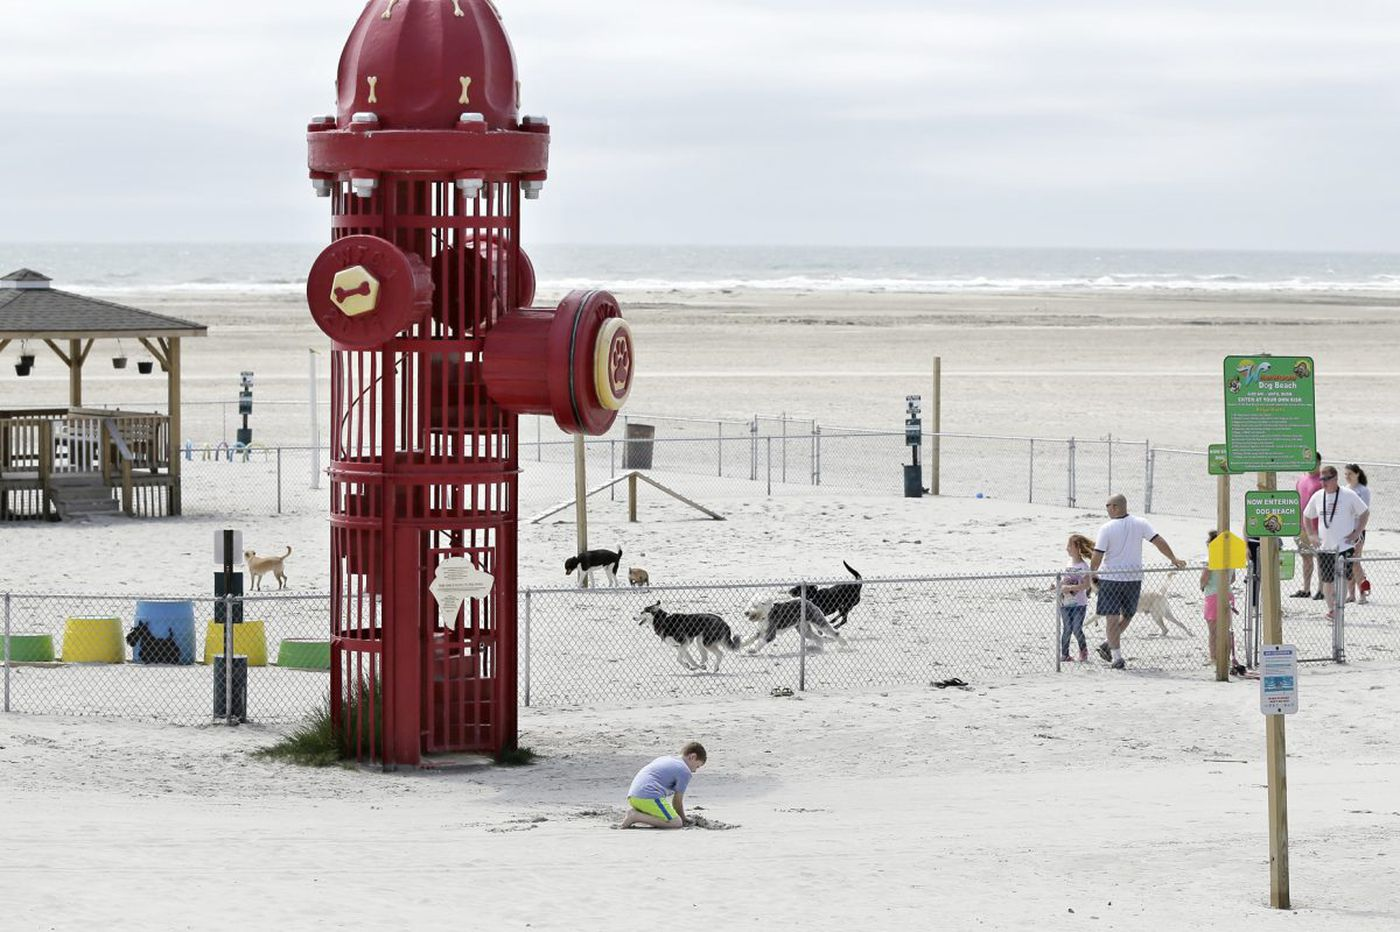 Wildwood's beach is where the dogs are